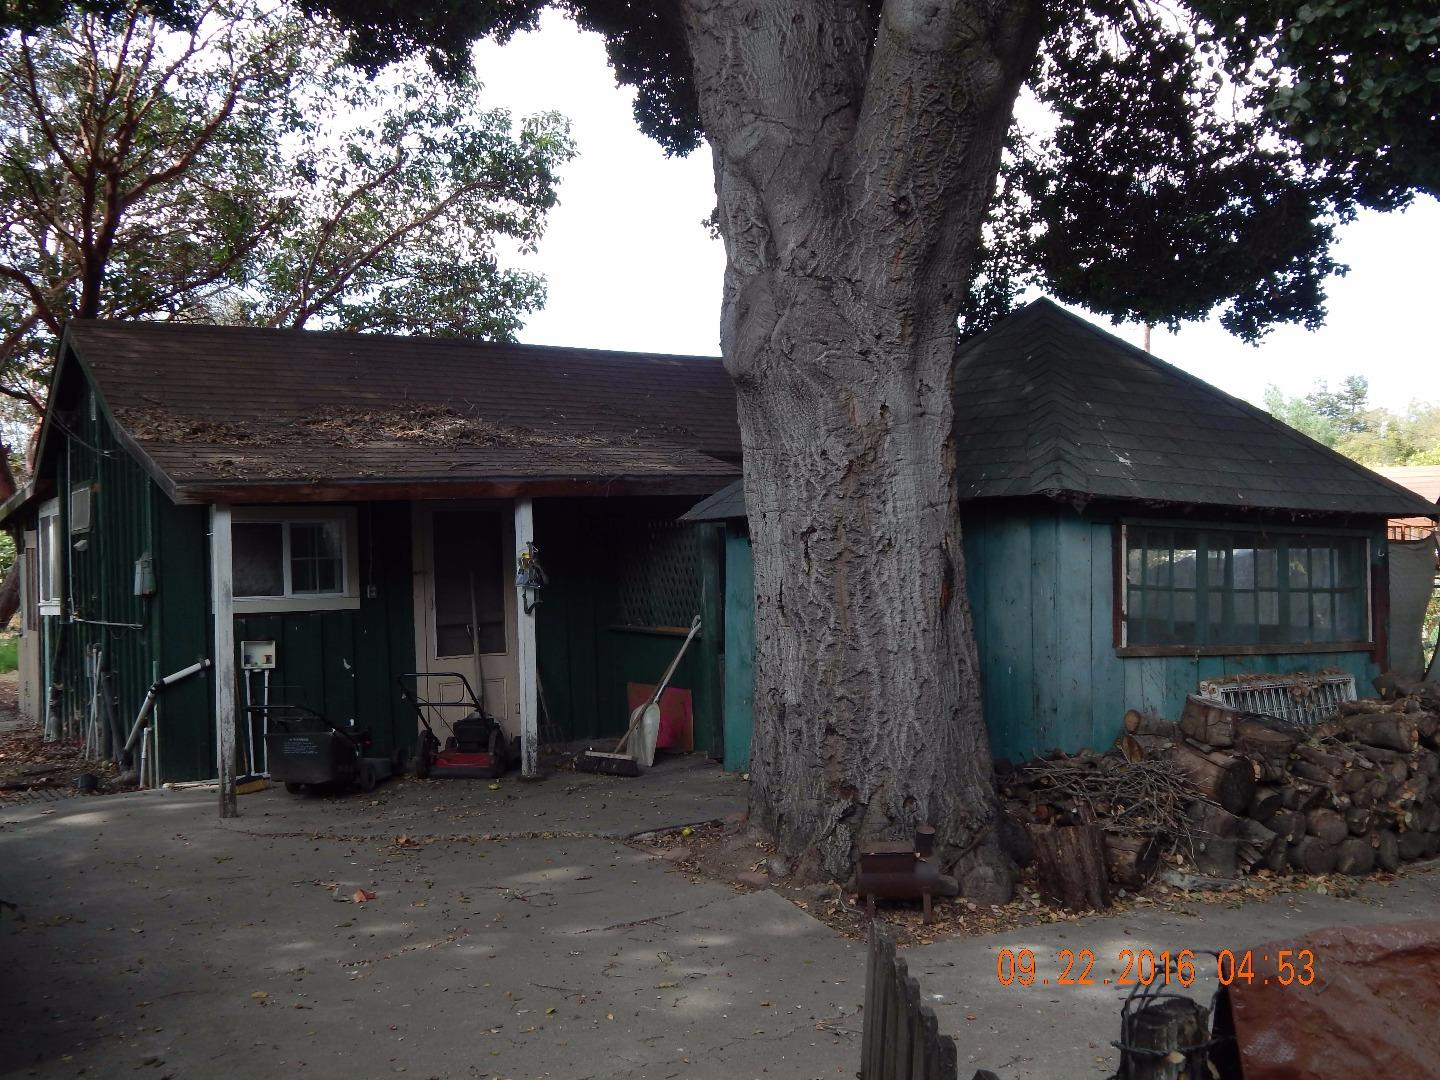 Additional photo for property listing at 1024 Monterey Street  Hollister, California 95023 United States